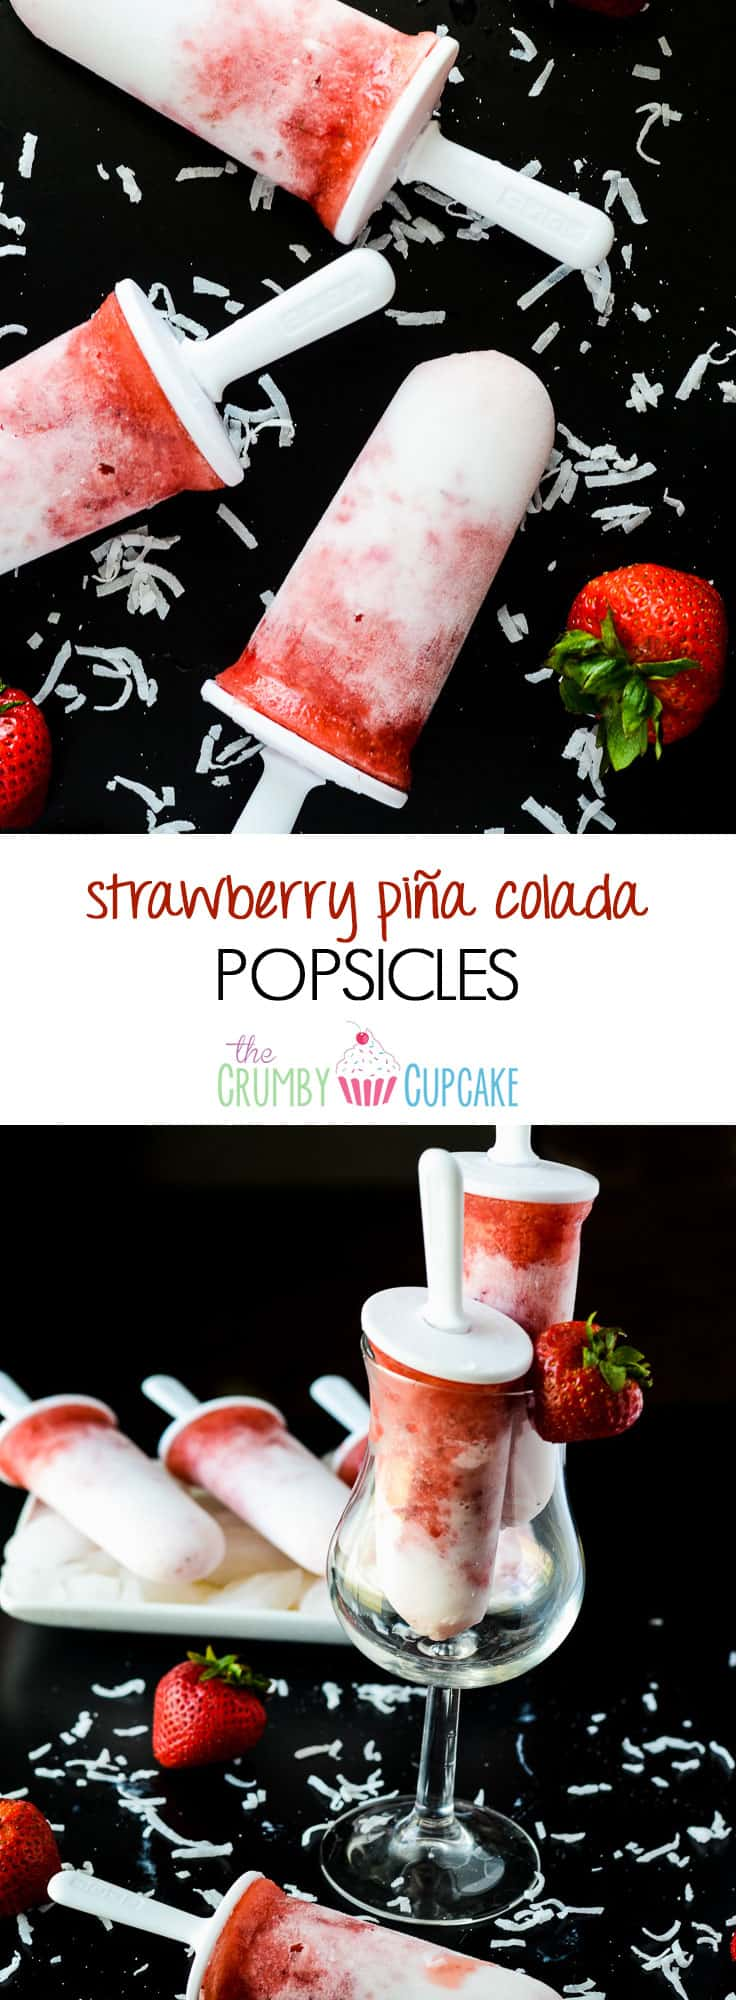 Strawberry Pina Colada Popsicles | A frosty, refreshing treat, made with fresh fruit and coconut milk, sweetened with agave, and spiked with coconut rum for the grown ups!